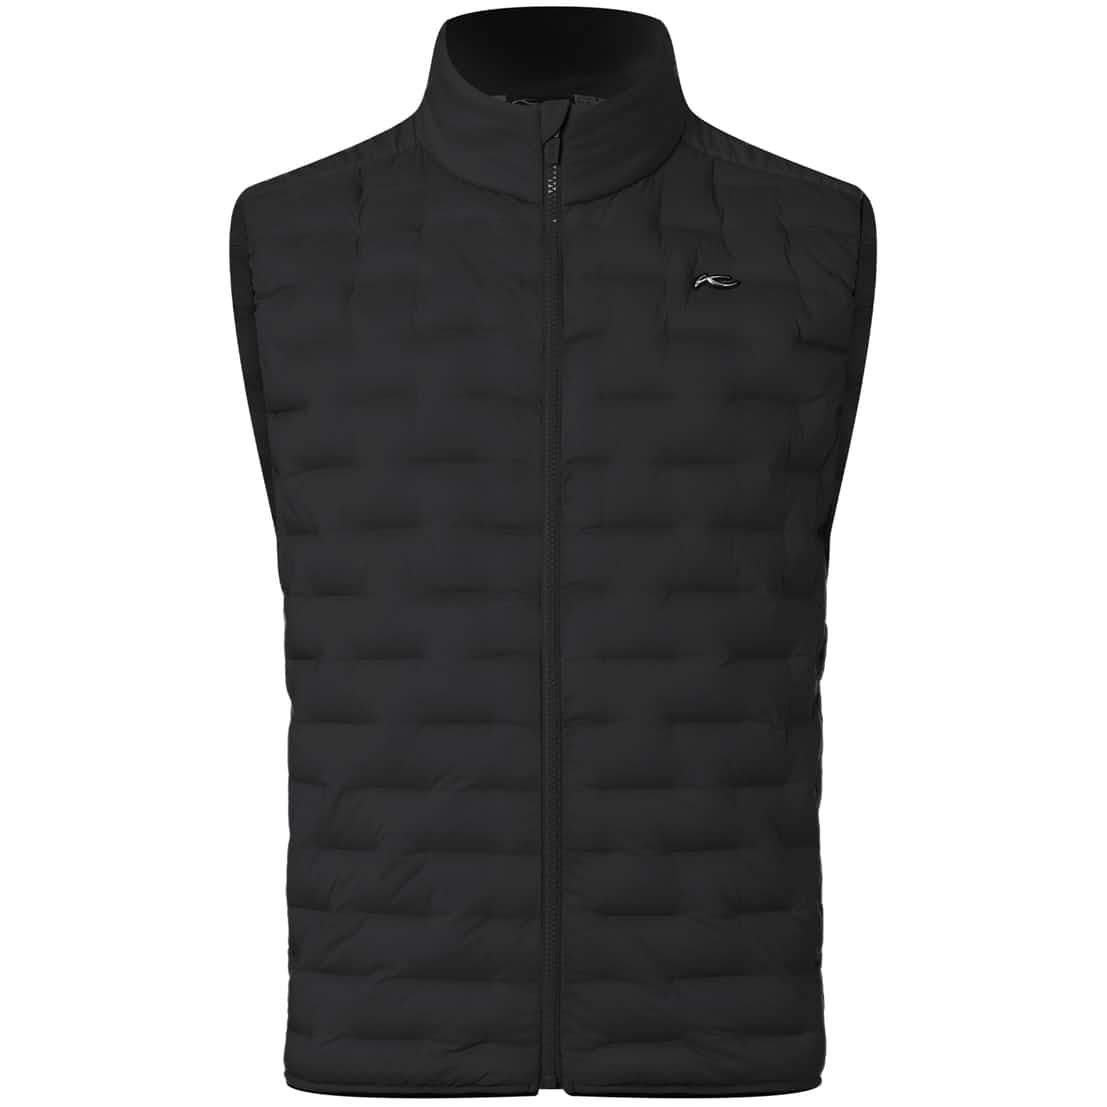 Blackcomb Insulation Vest Black - AW20